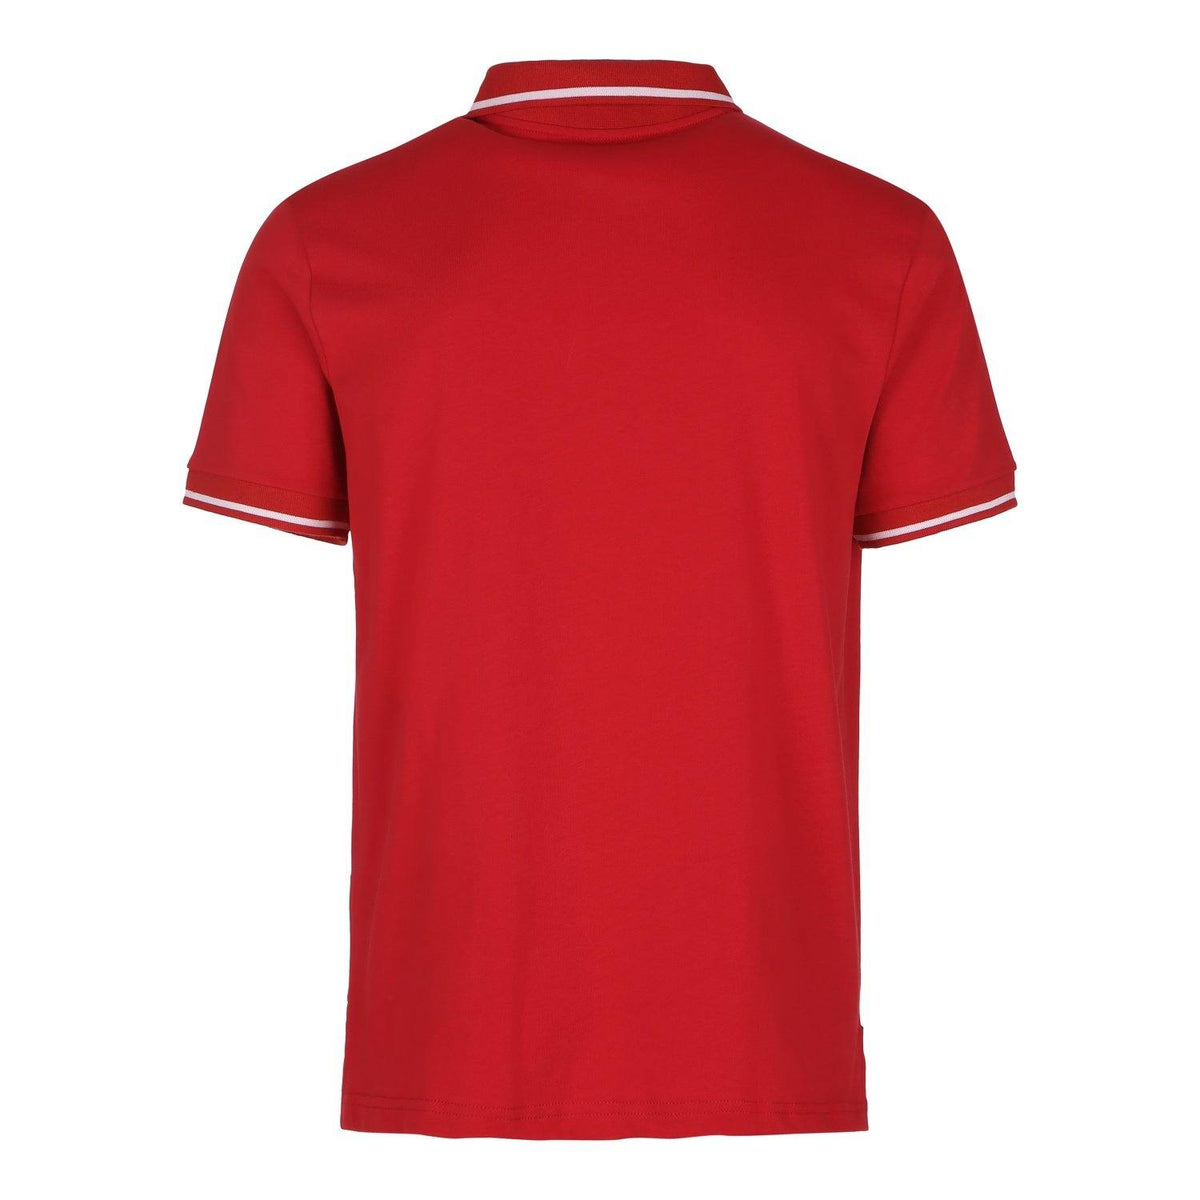 Hurlingham – Red Polo shirt – Poloshirts – Sumisura